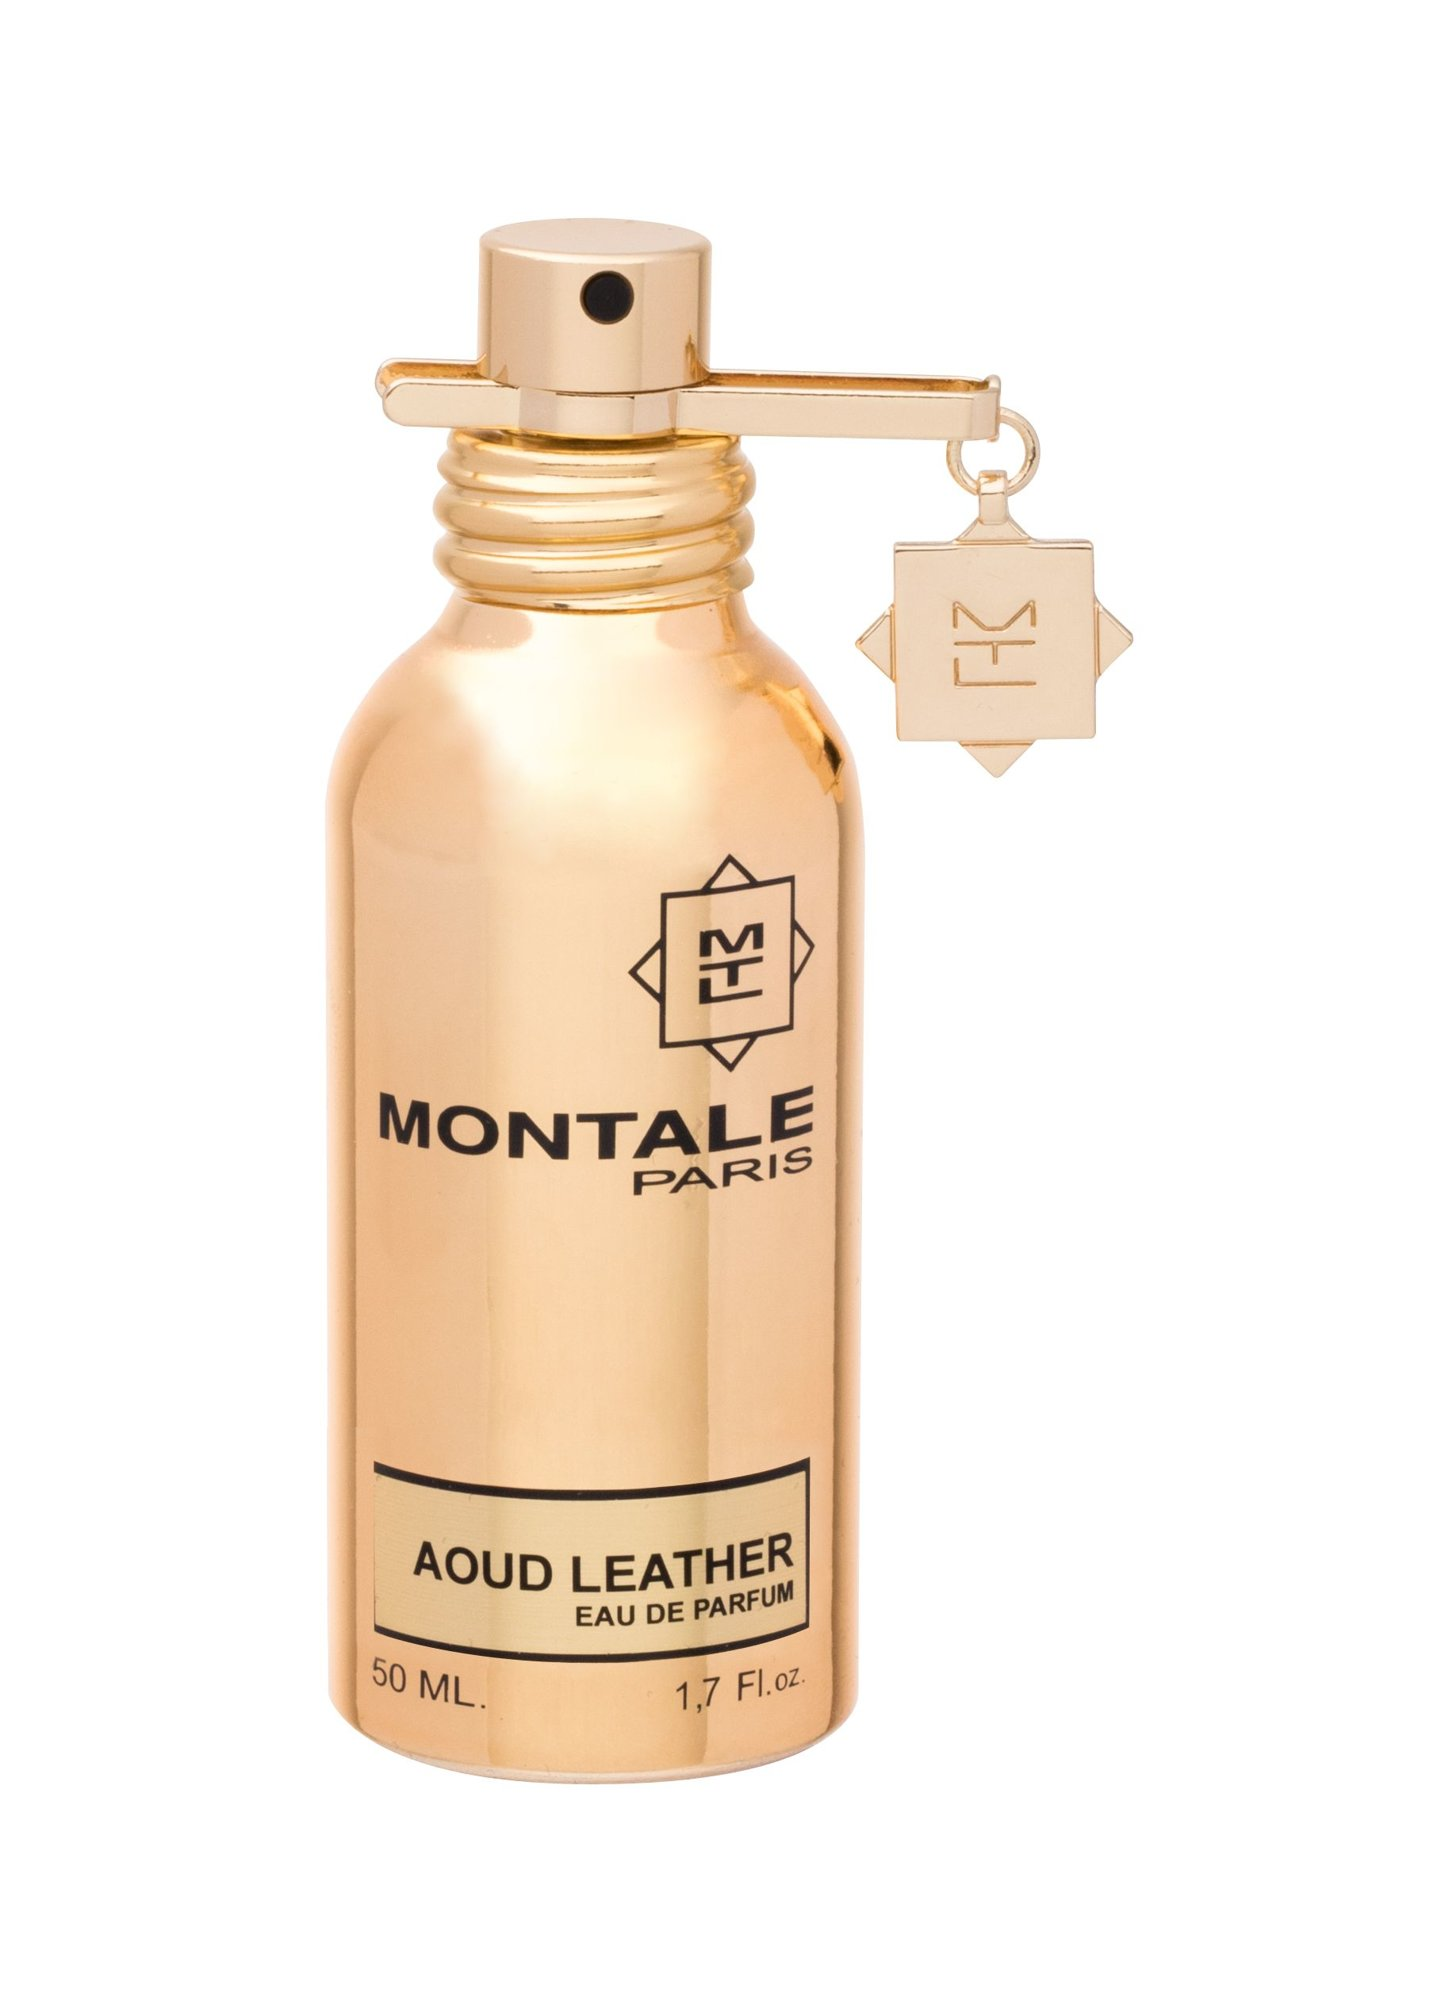 Montale Paris Aoud Leather EDP 50ml